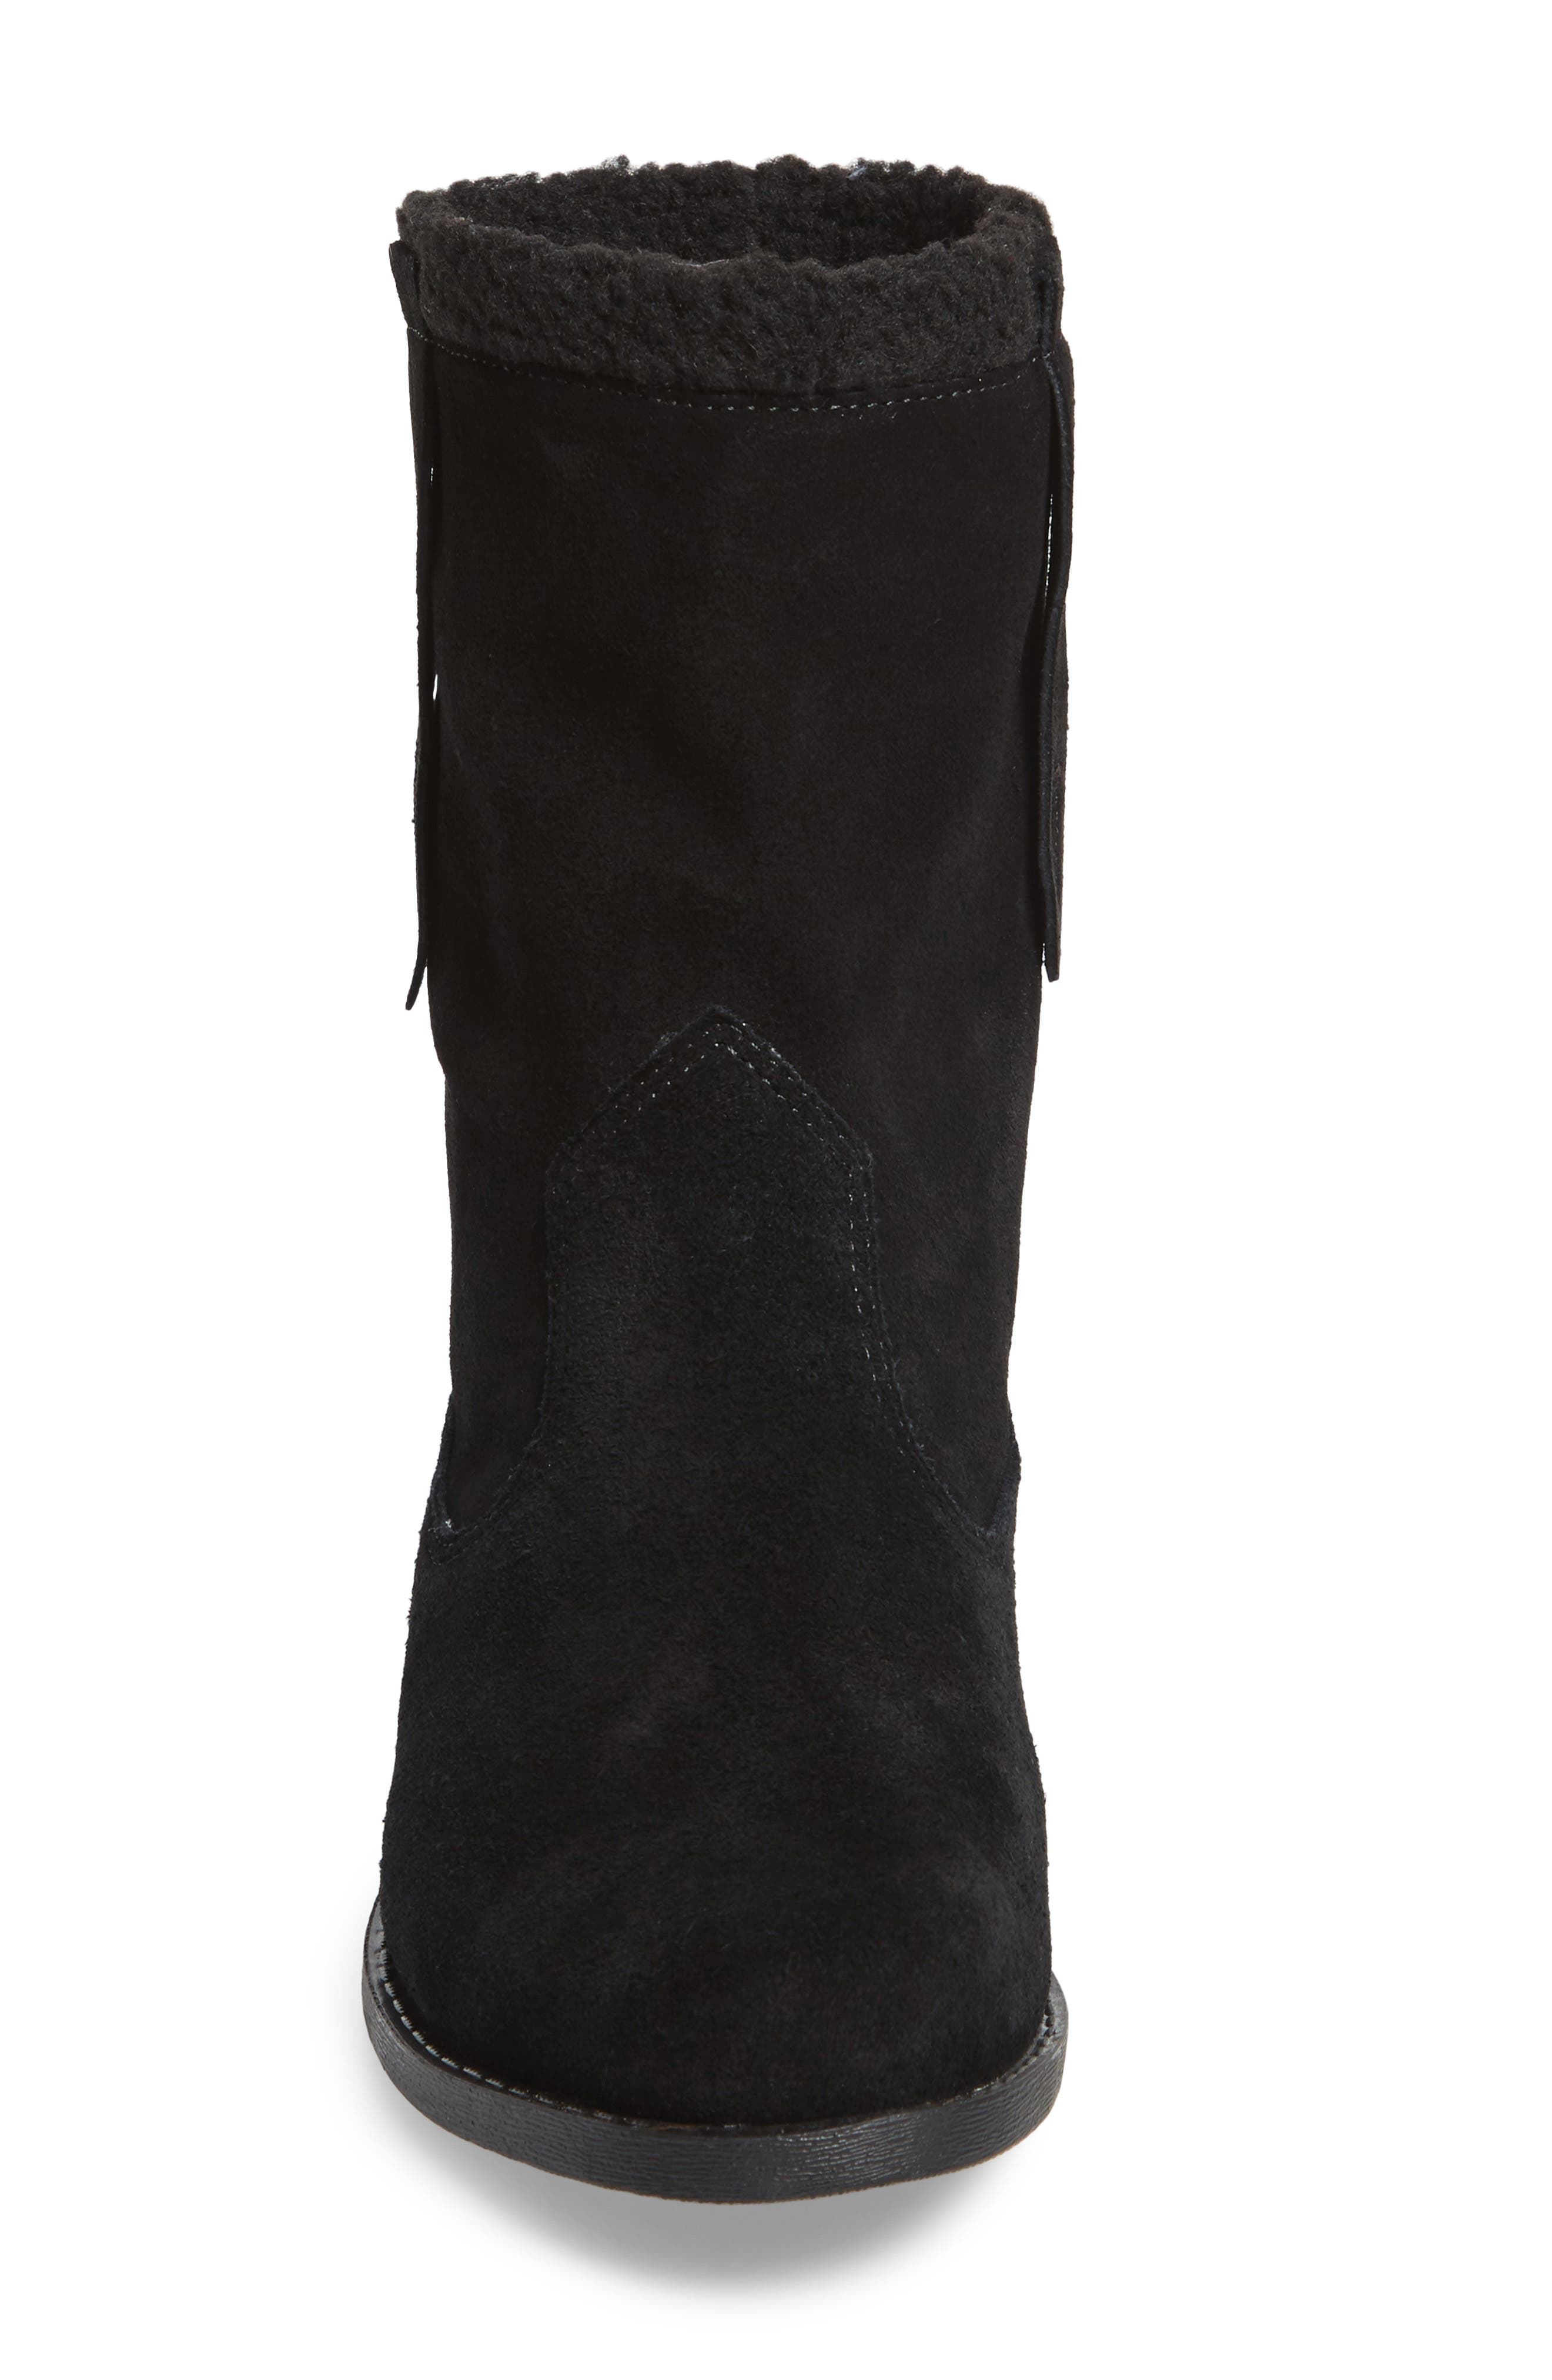 Verona Faux Shearling Boot,                             Alternate thumbnail 4, color,                             BLACK/ BLACK SUEDE